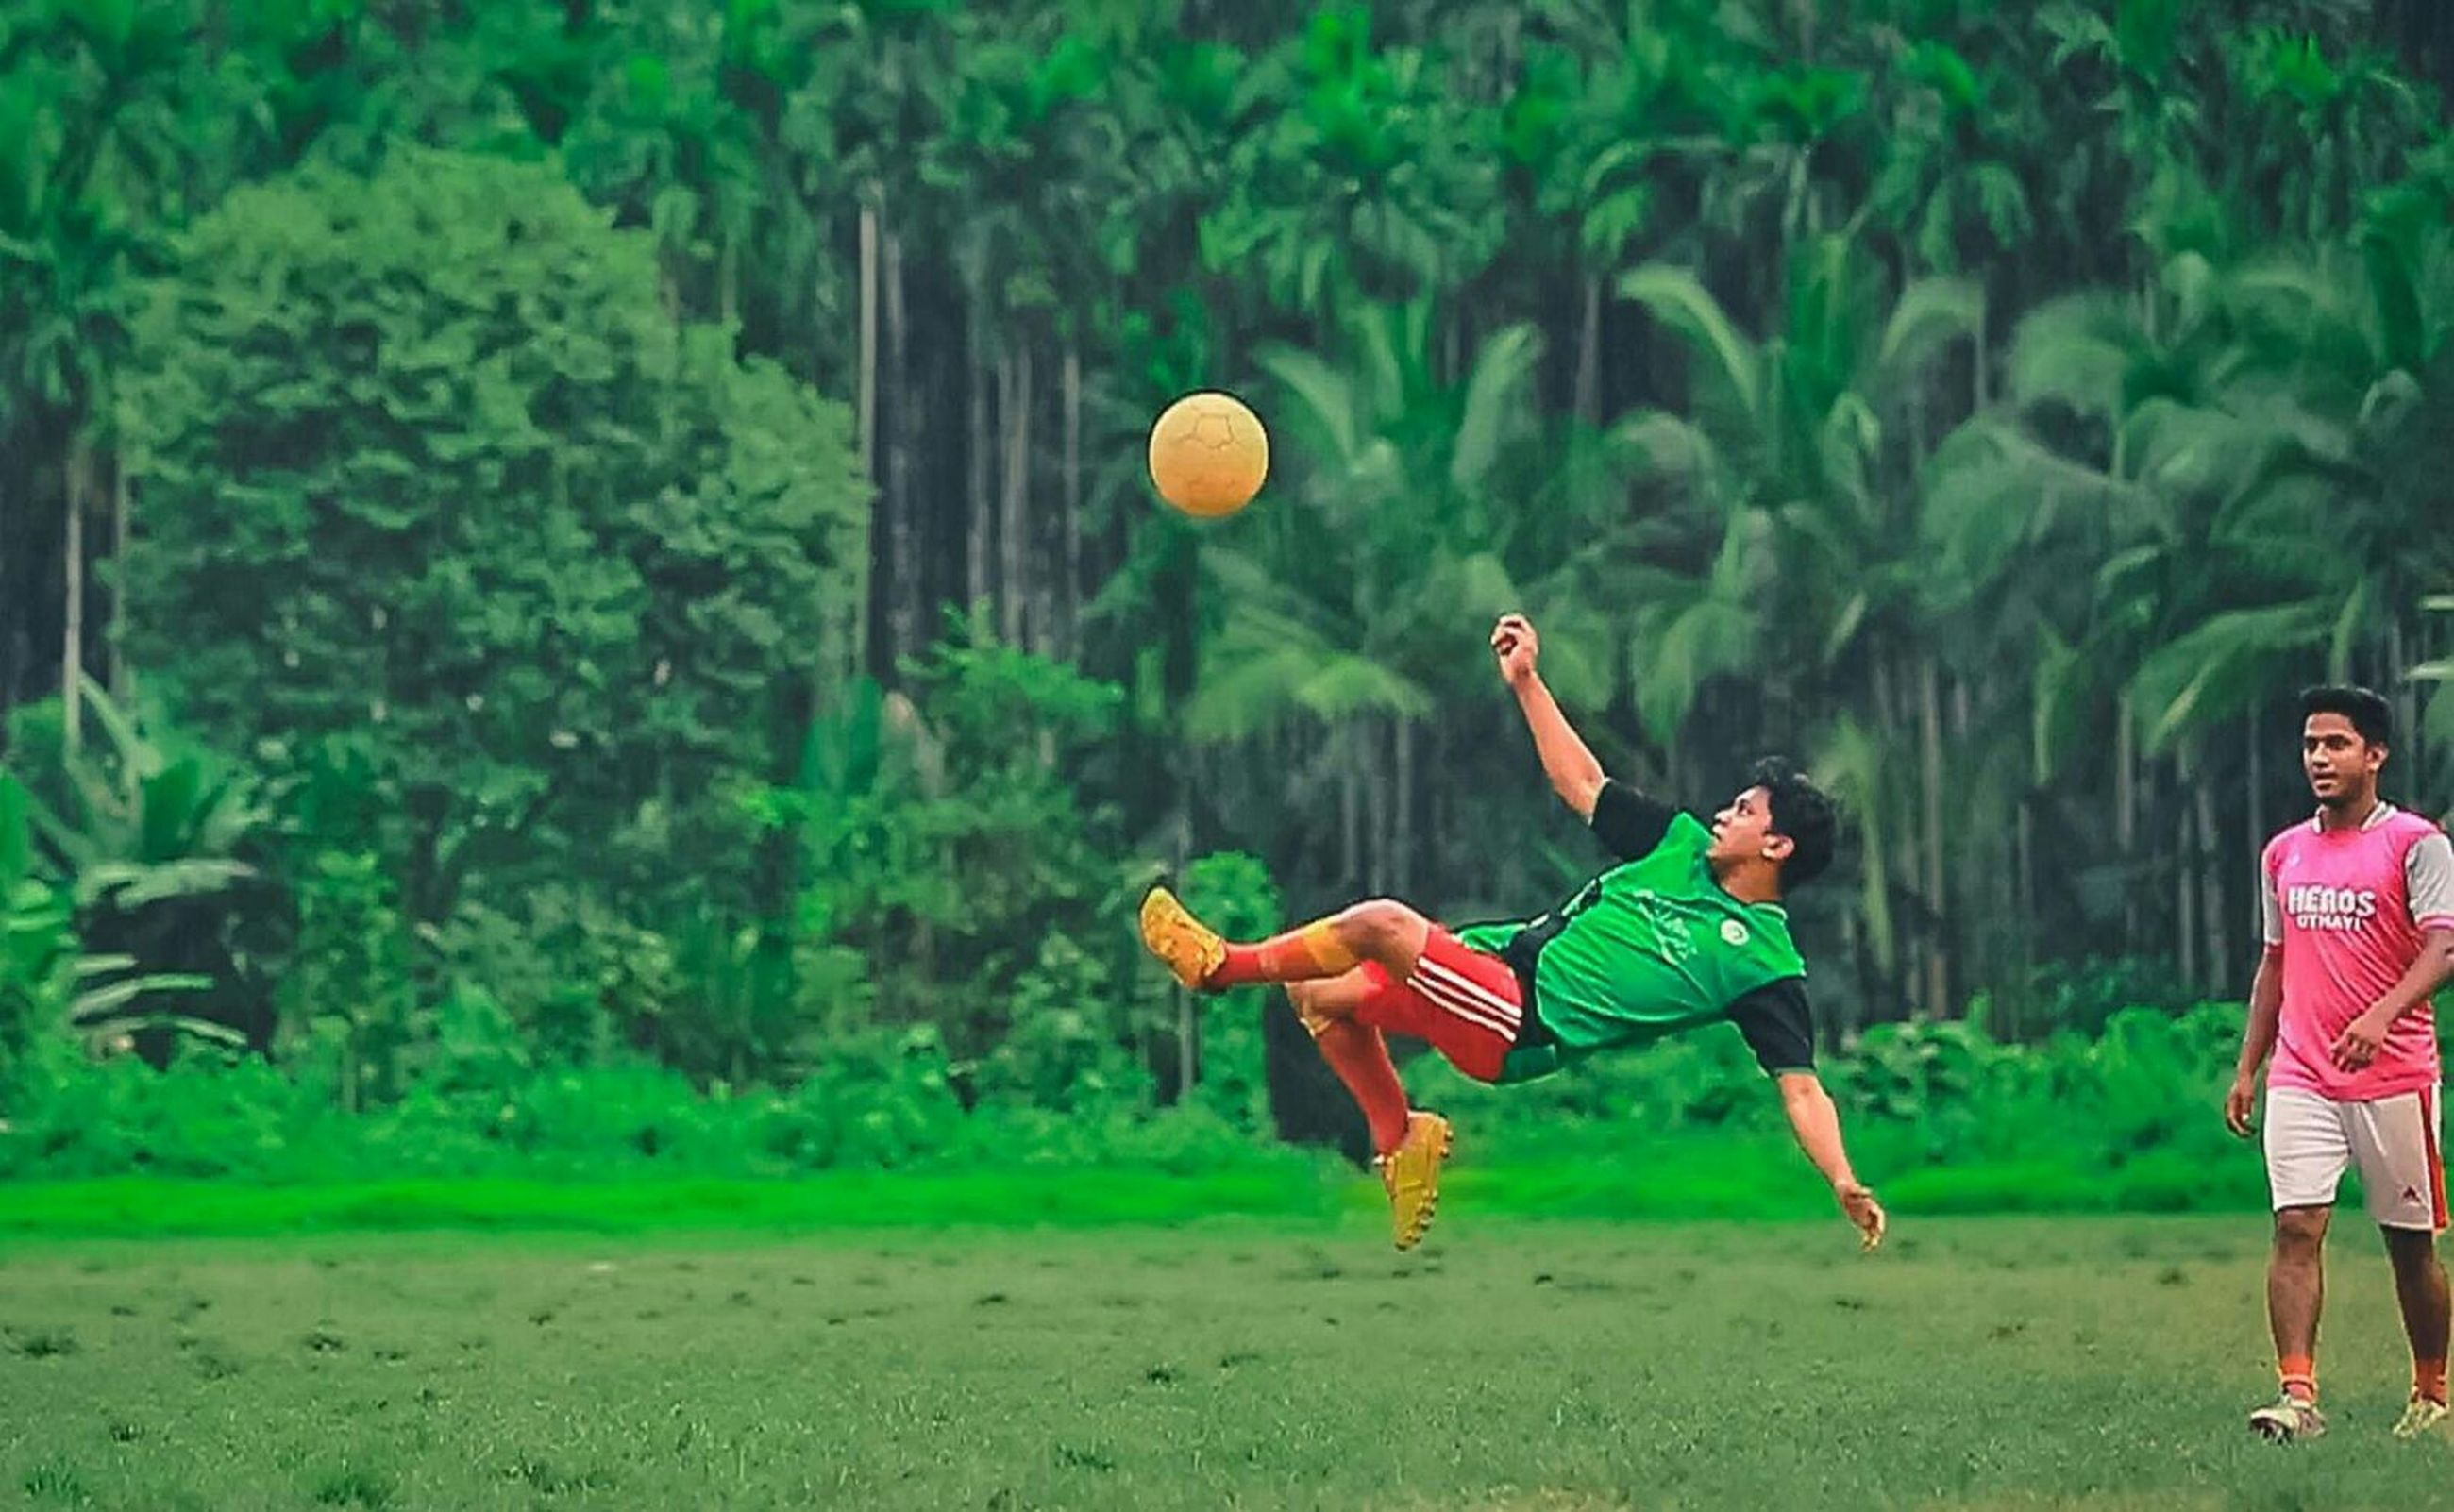 leisure activity, lifestyles, full length, childhood, casual clothing, boys, enjoyment, fun, playful, sport, mid-air, men, girls, playing, elementary age, field, togetherness